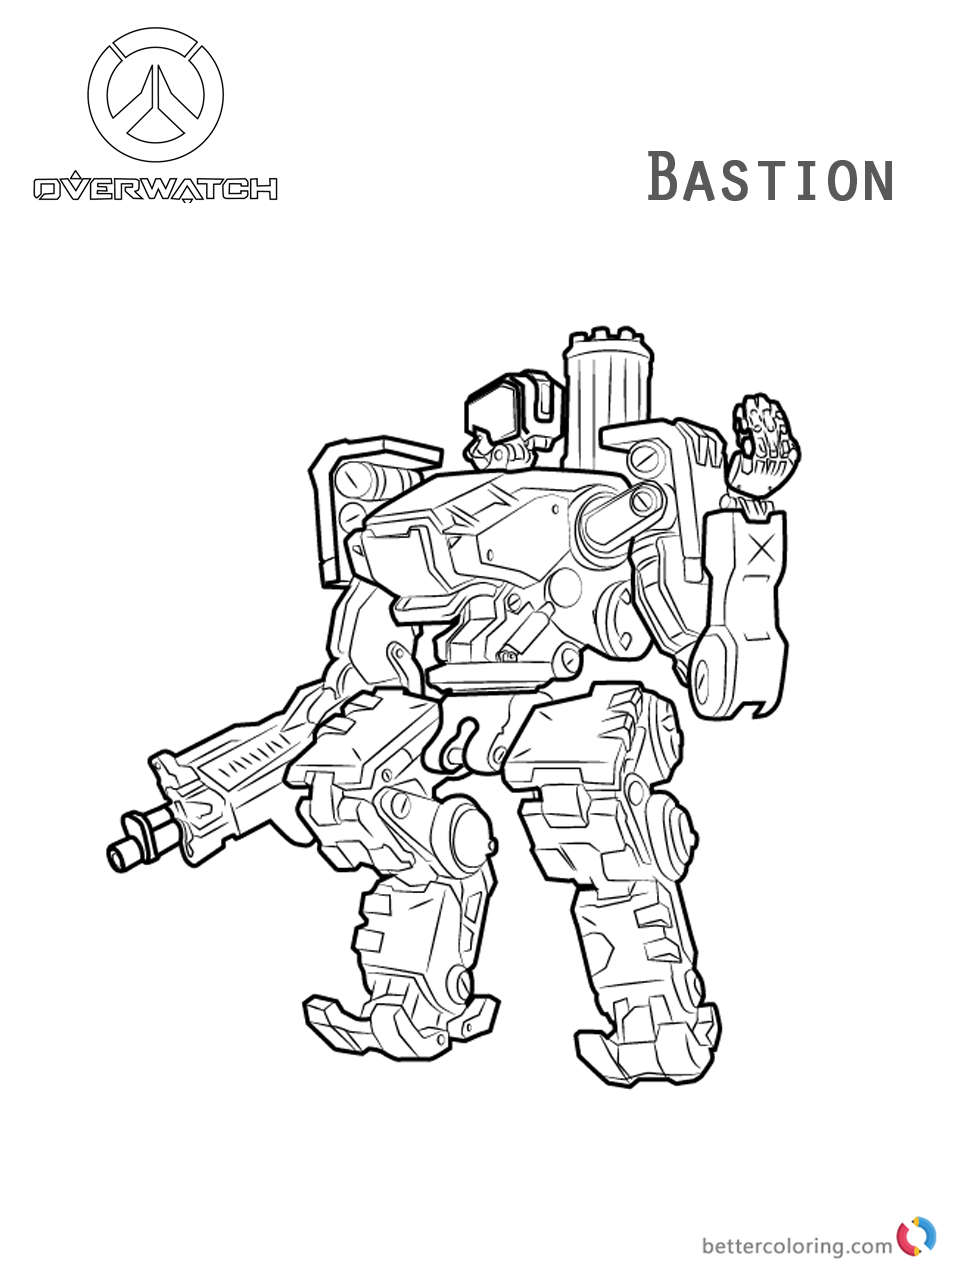 bastion from overwatch coloring pages